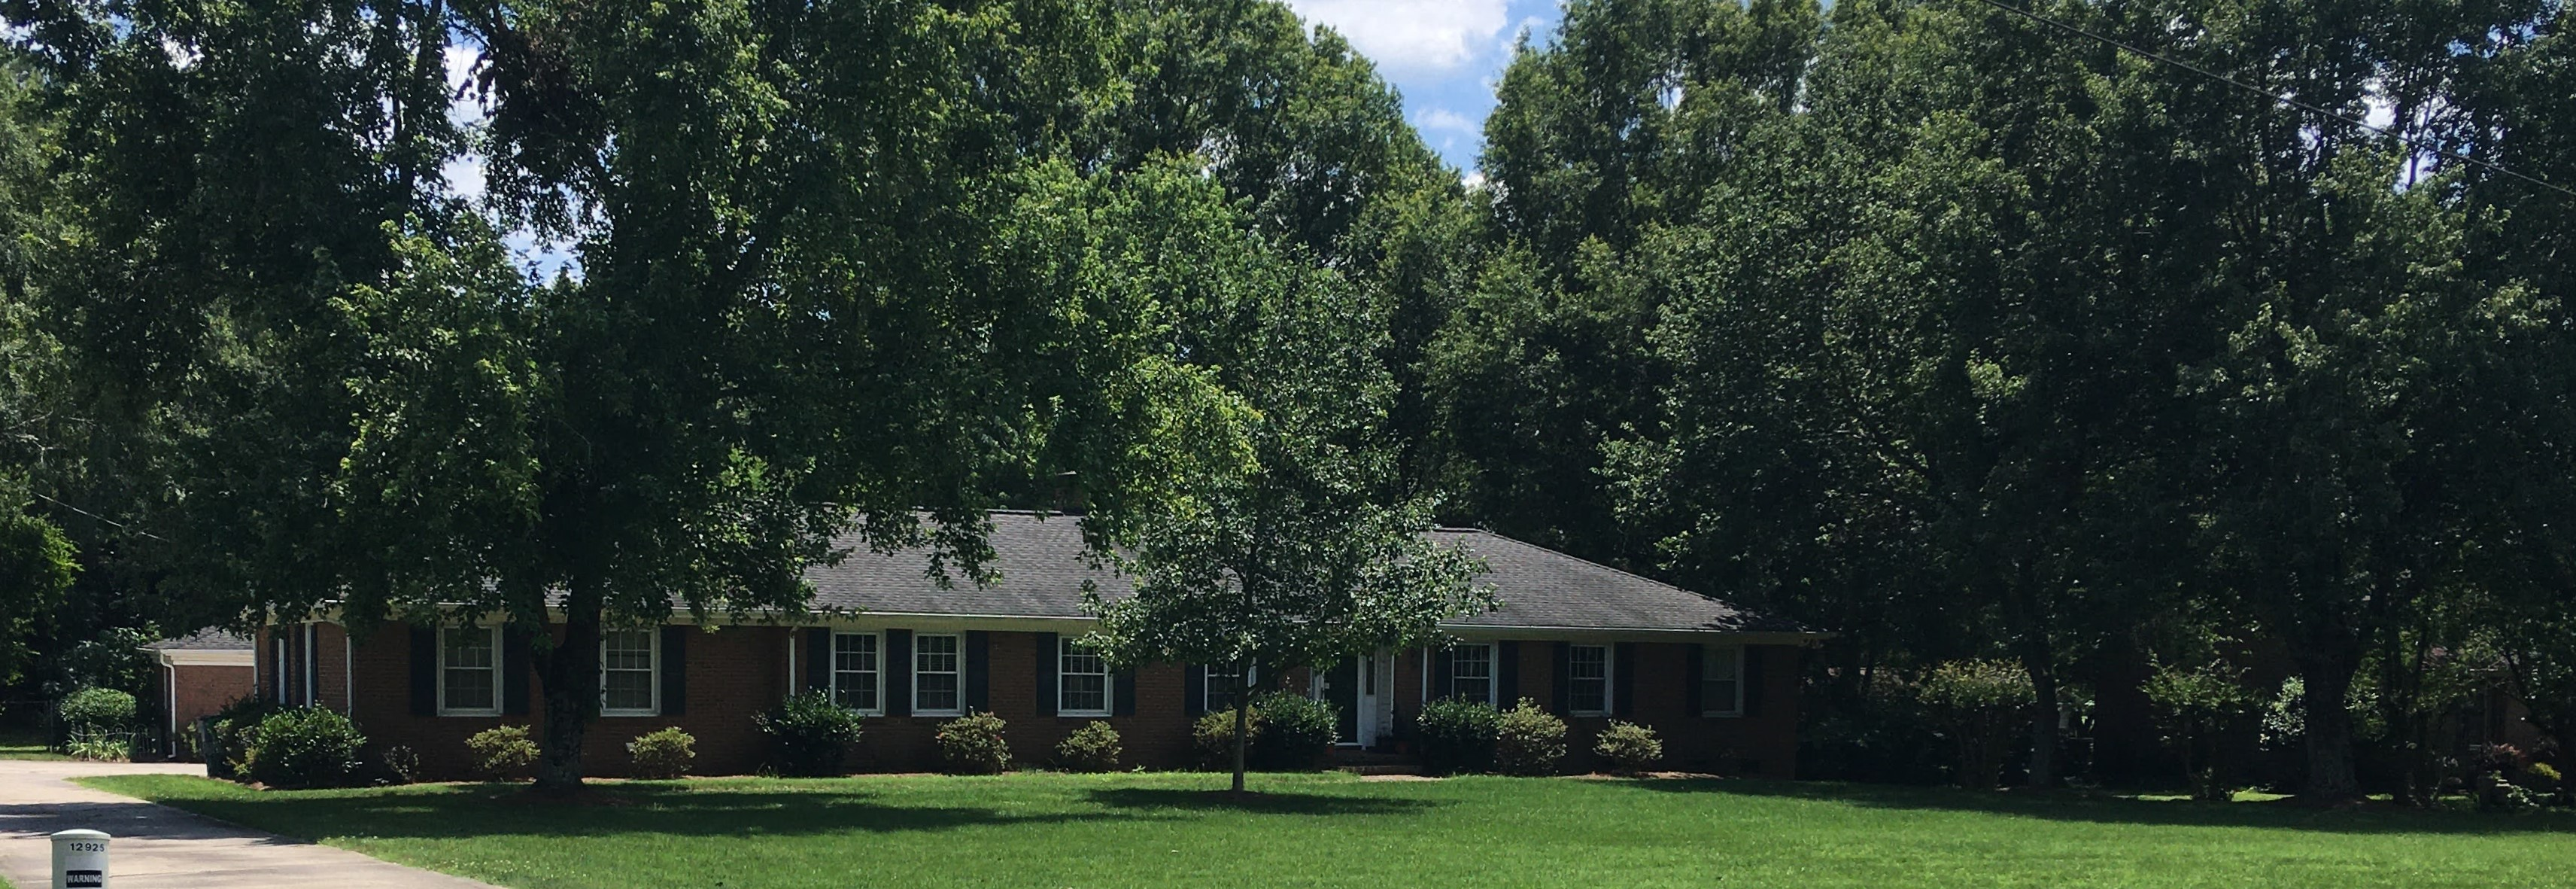 Sell South Charlotte Home Fast (704) 710-6270